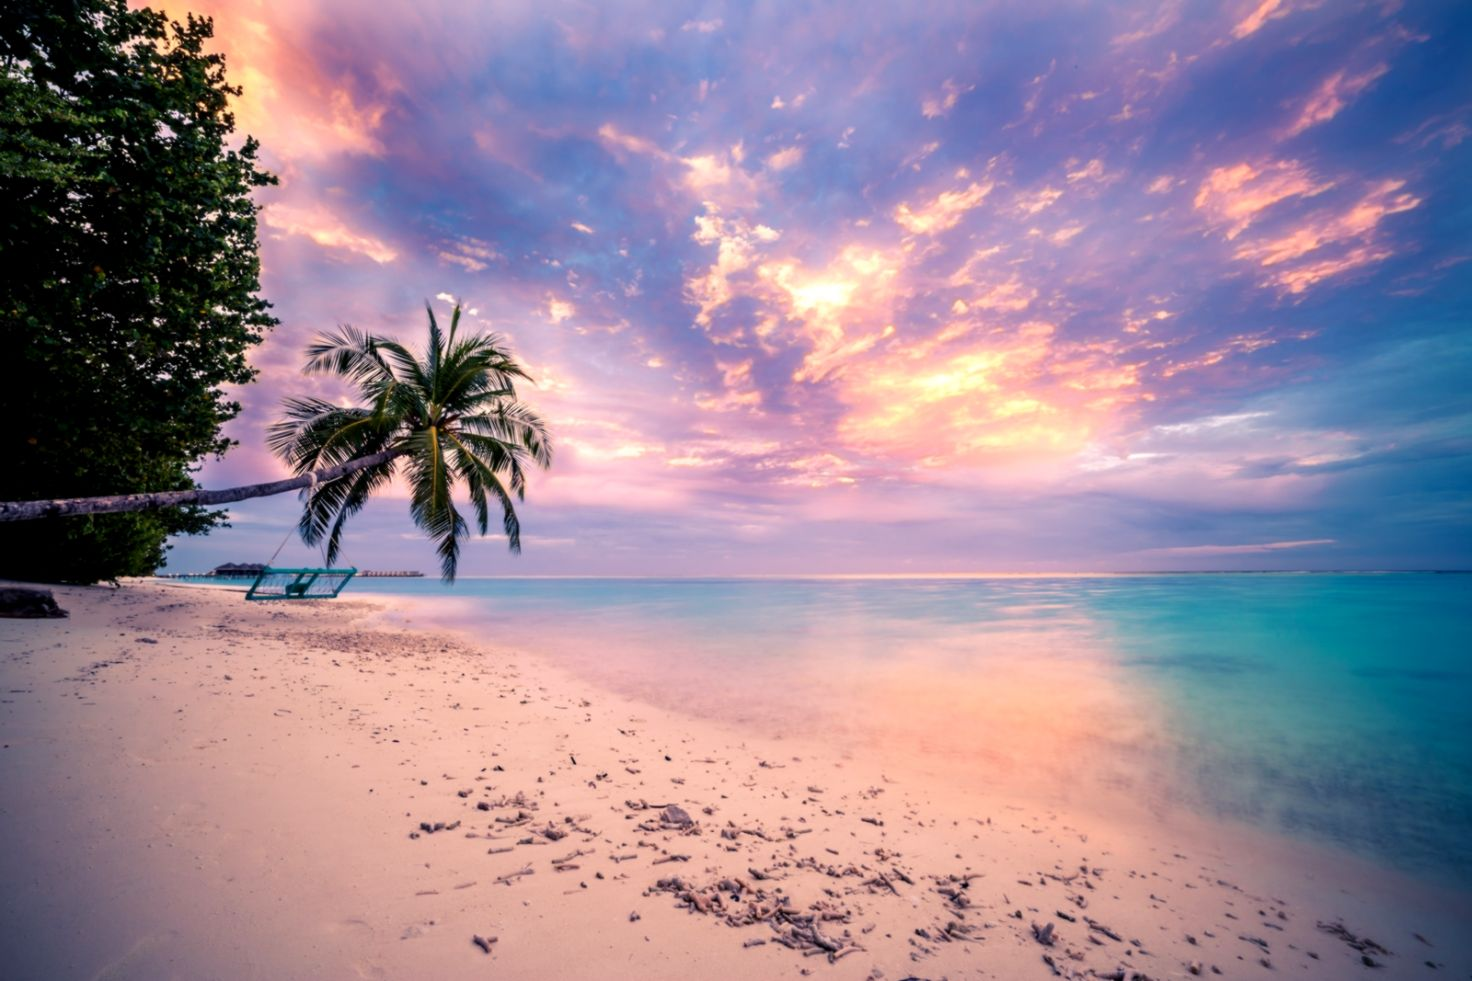 Tropical Beach Sunset Wallpaper And Background Image - Sunset Wallpaper Tropical Beach - HD Wallpaper